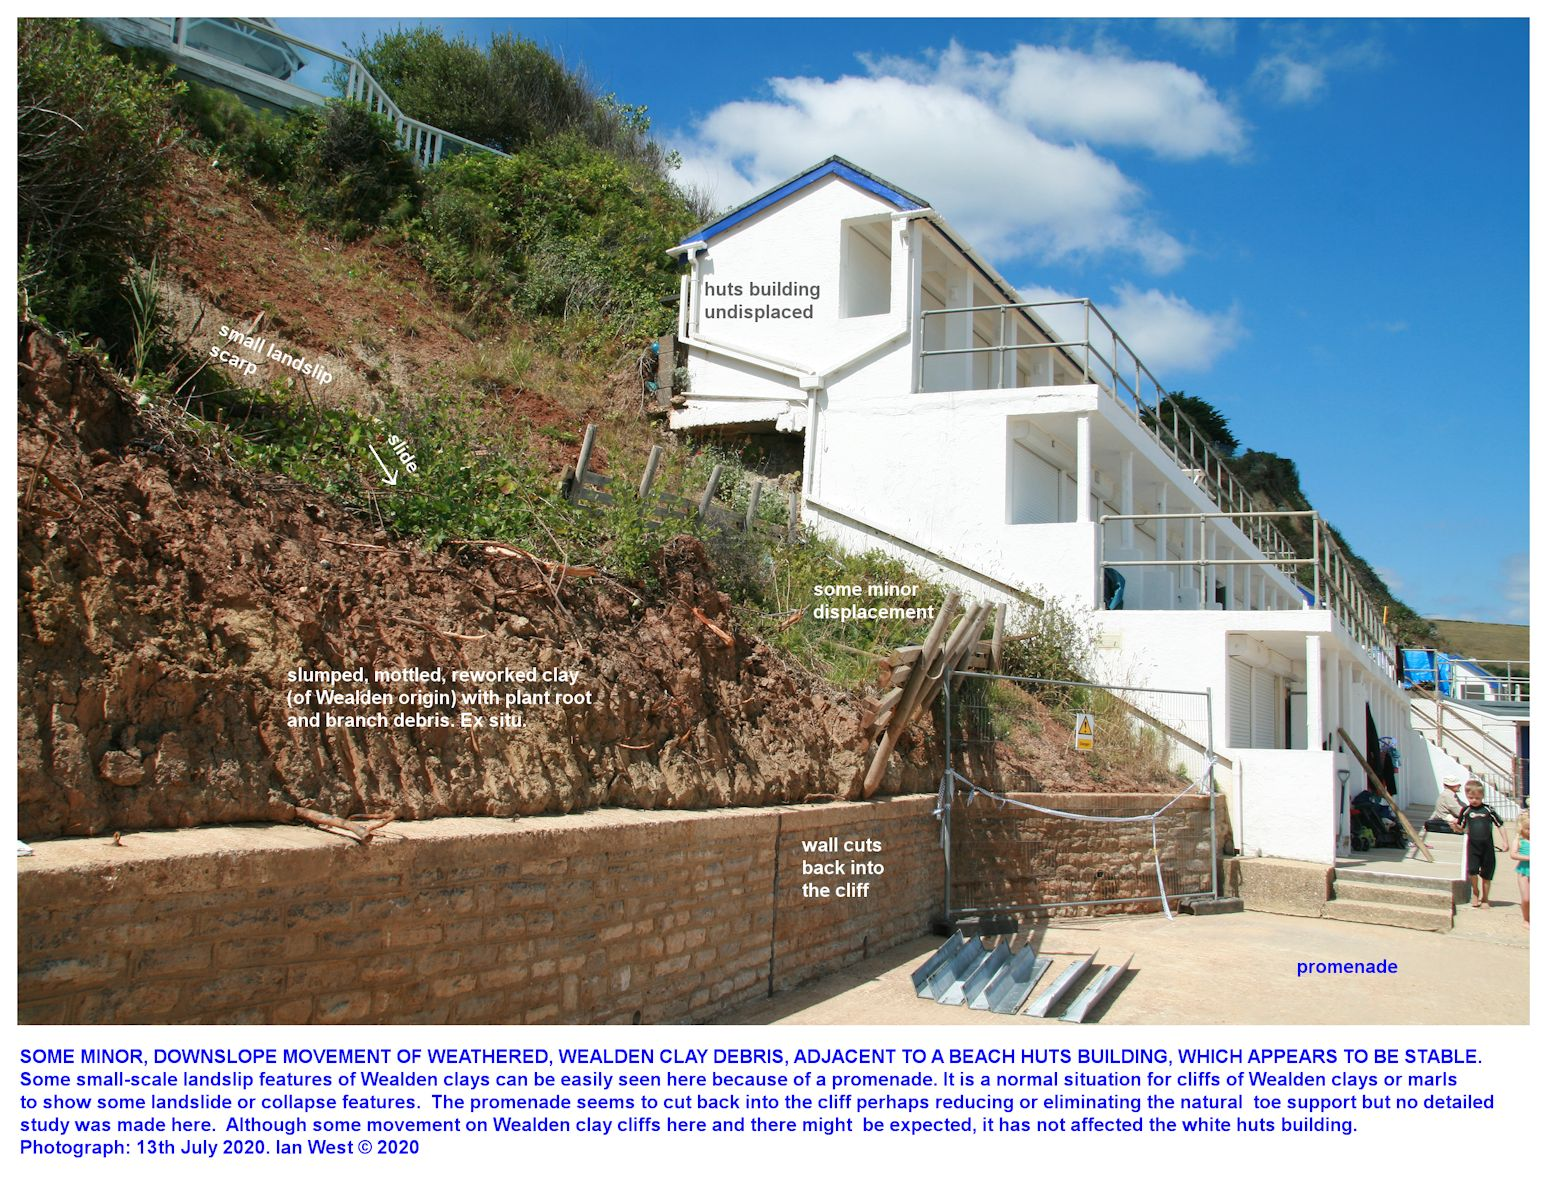 A small landslide of Wealden clay in the general area of beach huts in central Swanage Bay, Dorset, 16th July 2020